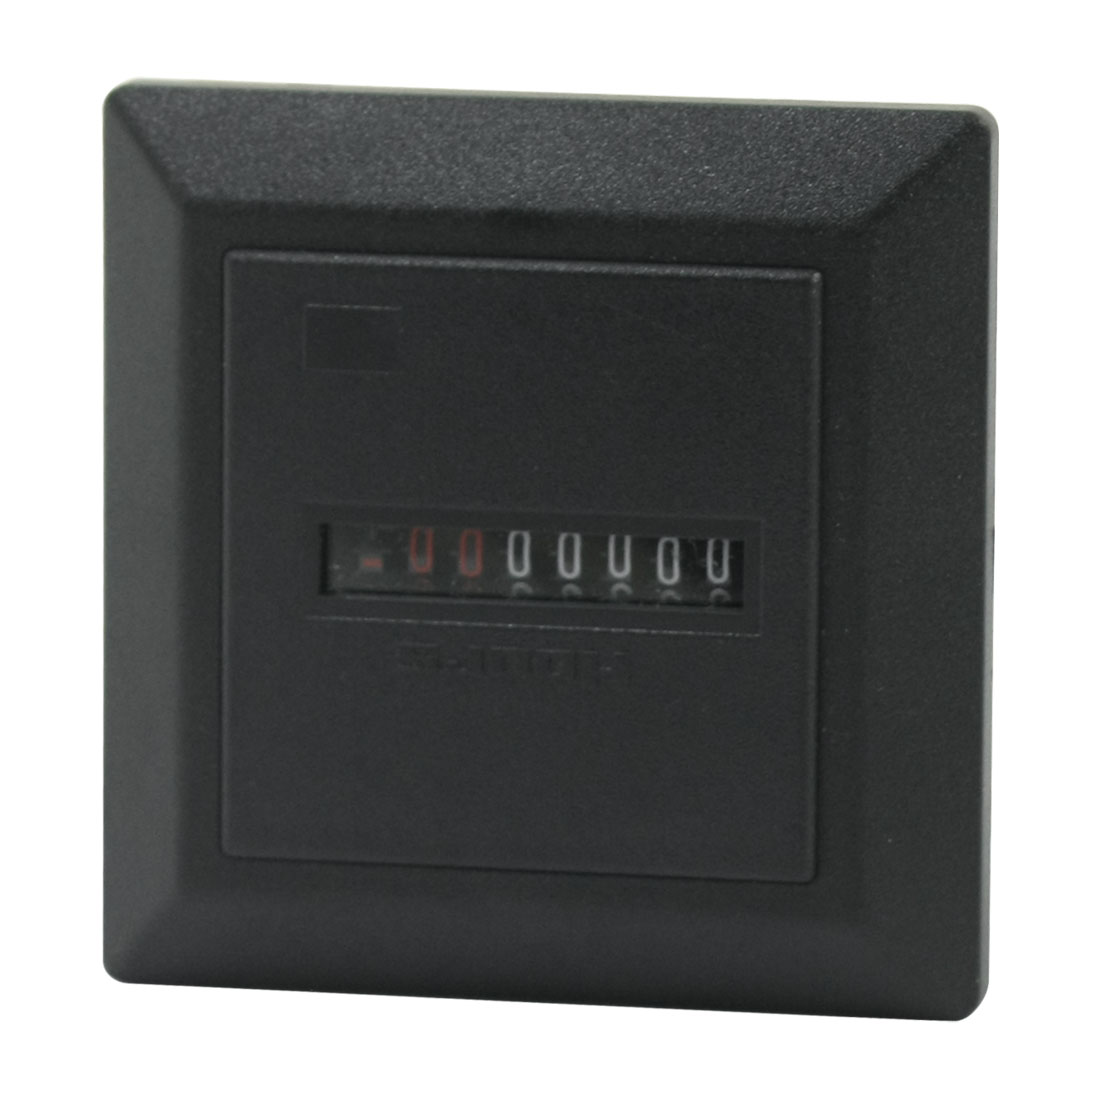 Panel Mounting 99.99999h 7-Digit 2 Screw Terminals Black Plastic Industrial Counter Hour Timer AC220-240V